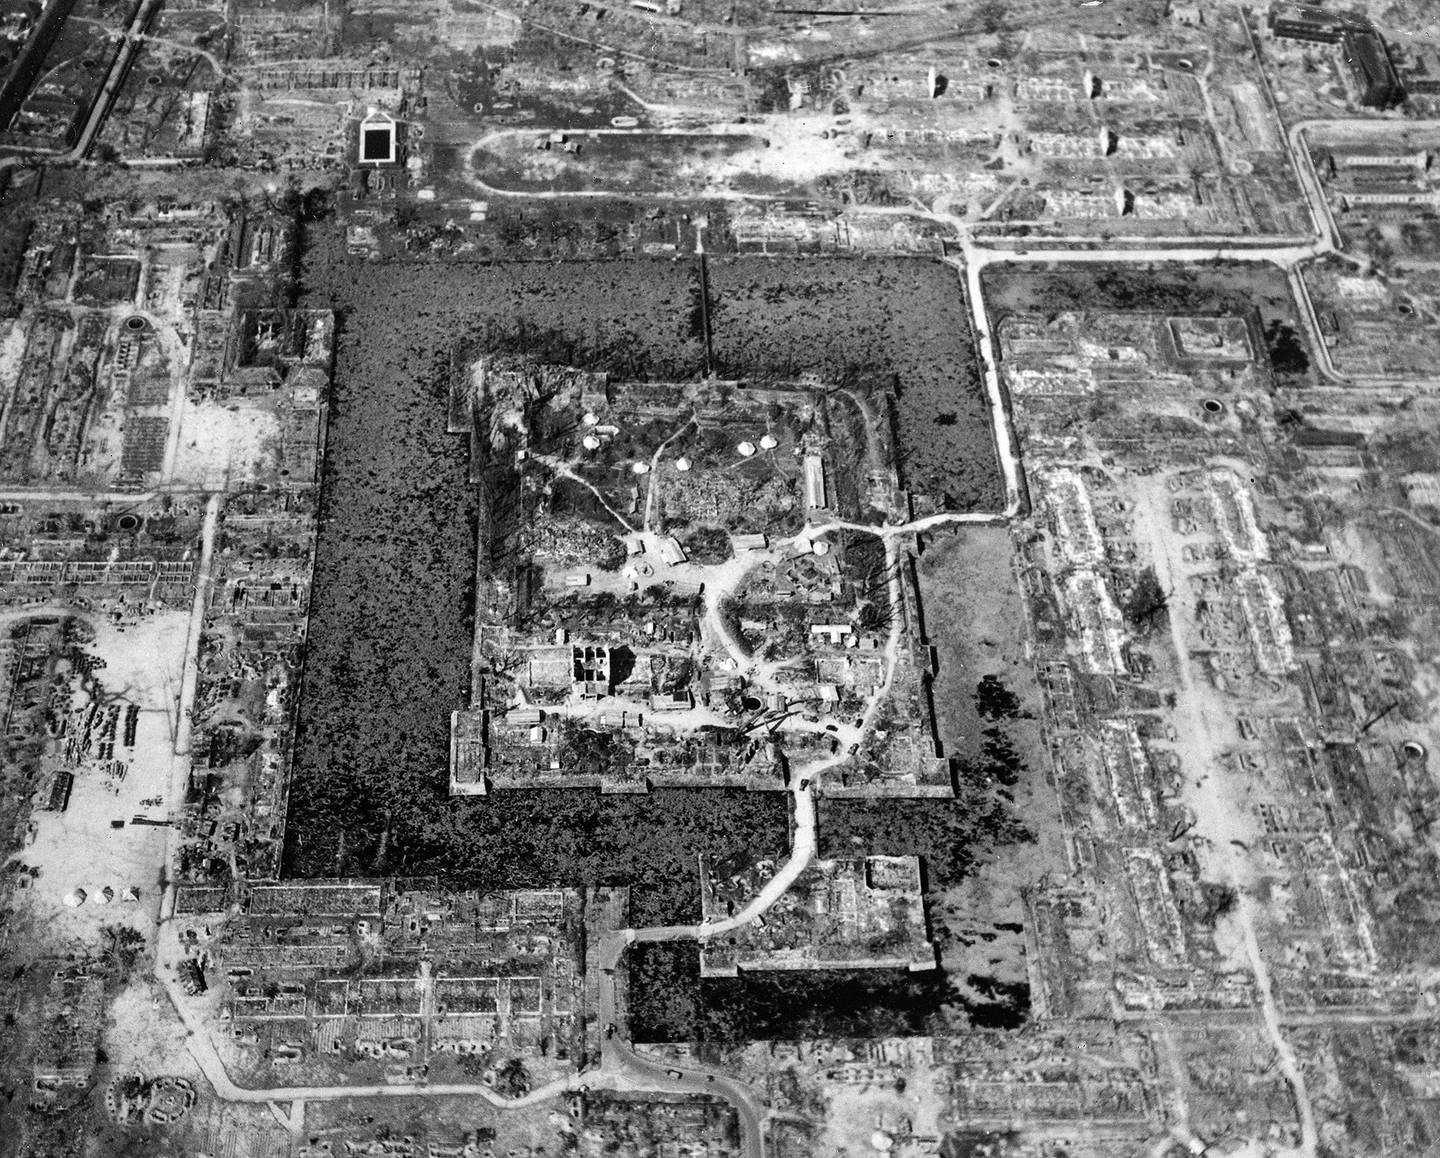 This Aug. 6, 1945, file photo released by the U.S. Air Force shows the total destruction of Hiroshima, Japan, as the result of the first atomic bomb dropped.